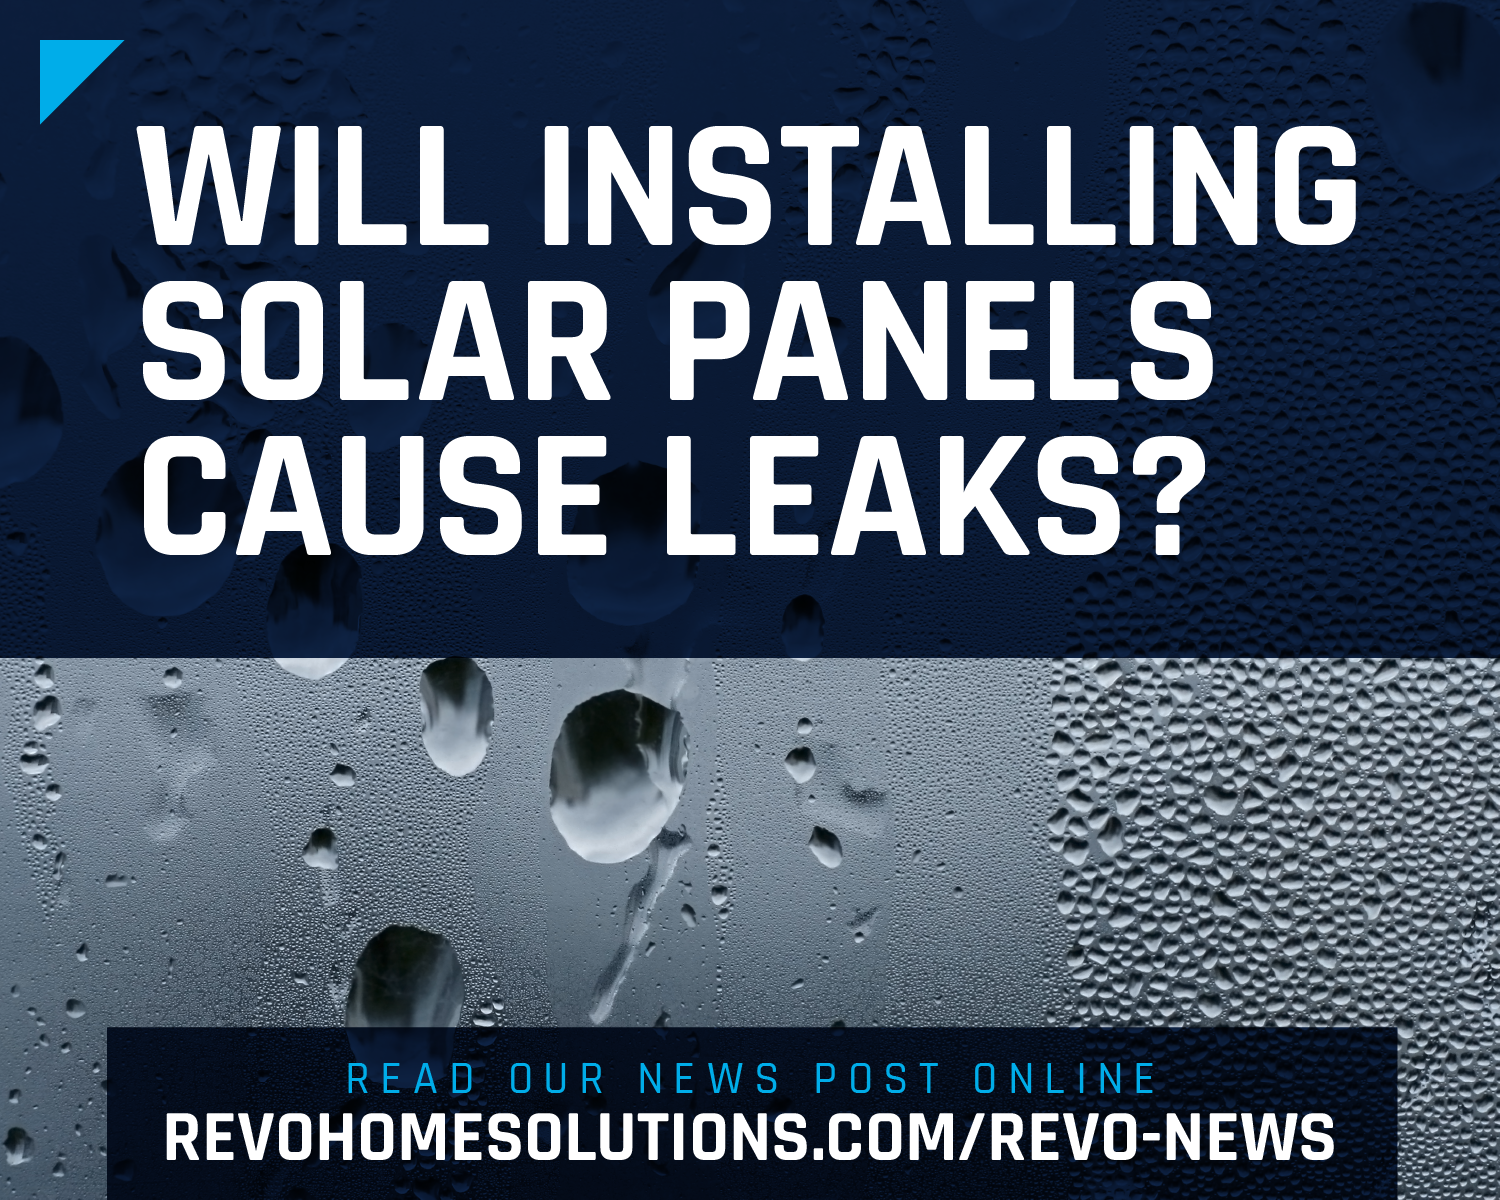 Will Installing Solar Panels Cause Leaks?